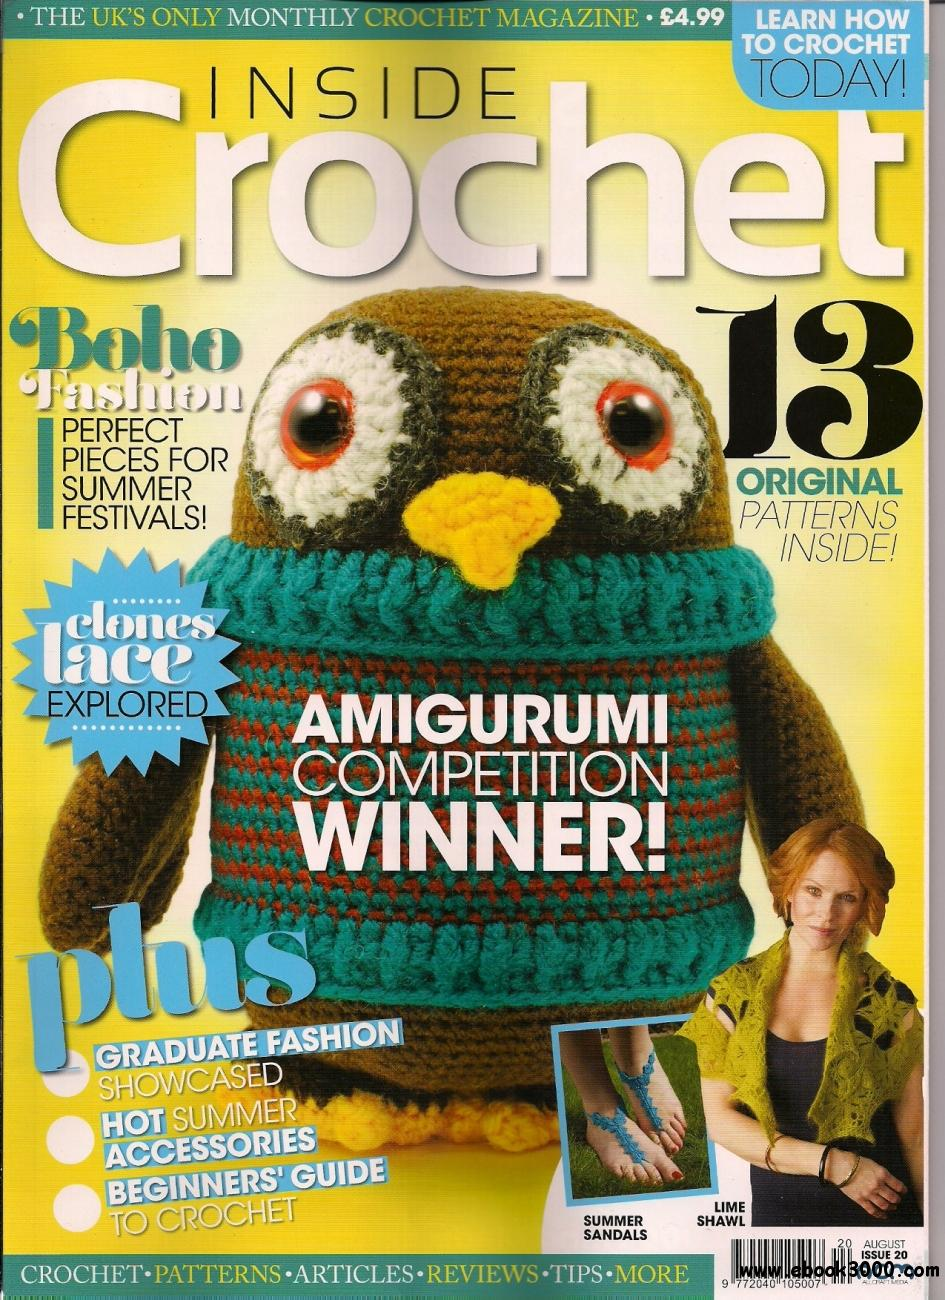 Amigurumi Made Easy Magazine : Inside Crochet, Issue 17 - May 2011 free download links ...